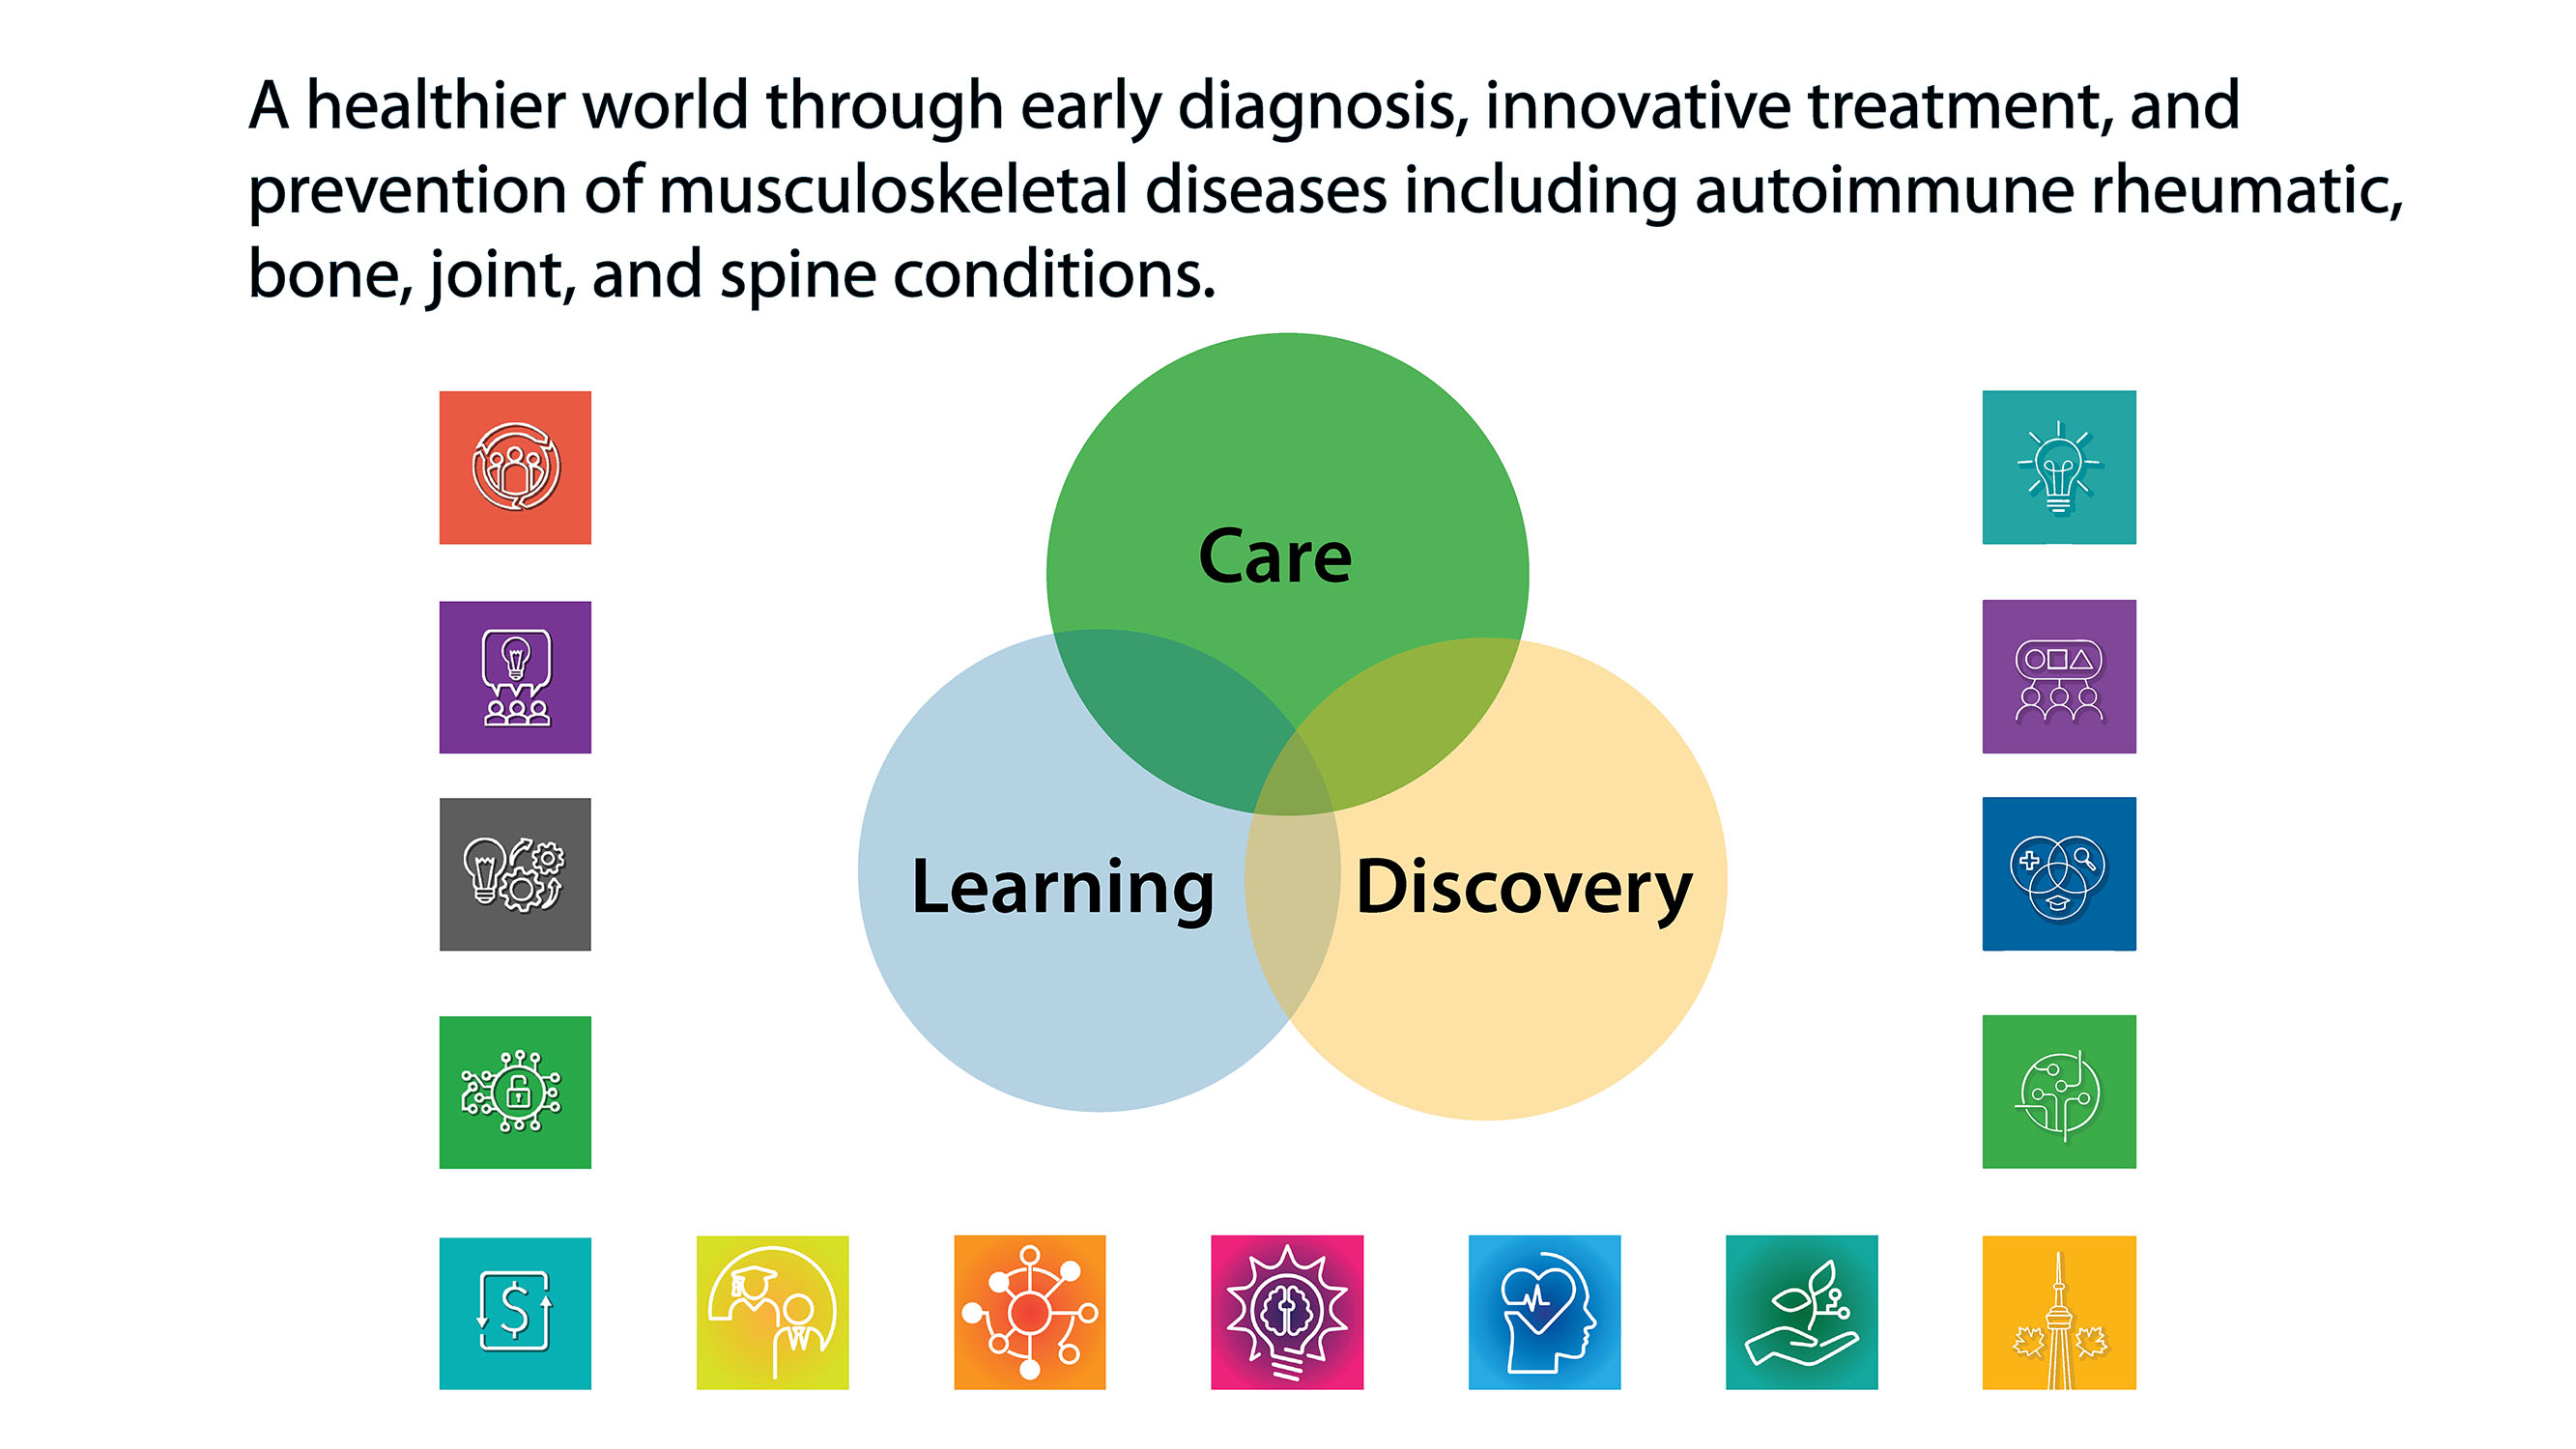 A healthier world through early diagnosis, innovative treatment and prevention of musculoskeletal diseases including autoimmune rheumatic, bone, joint, and spine conditions